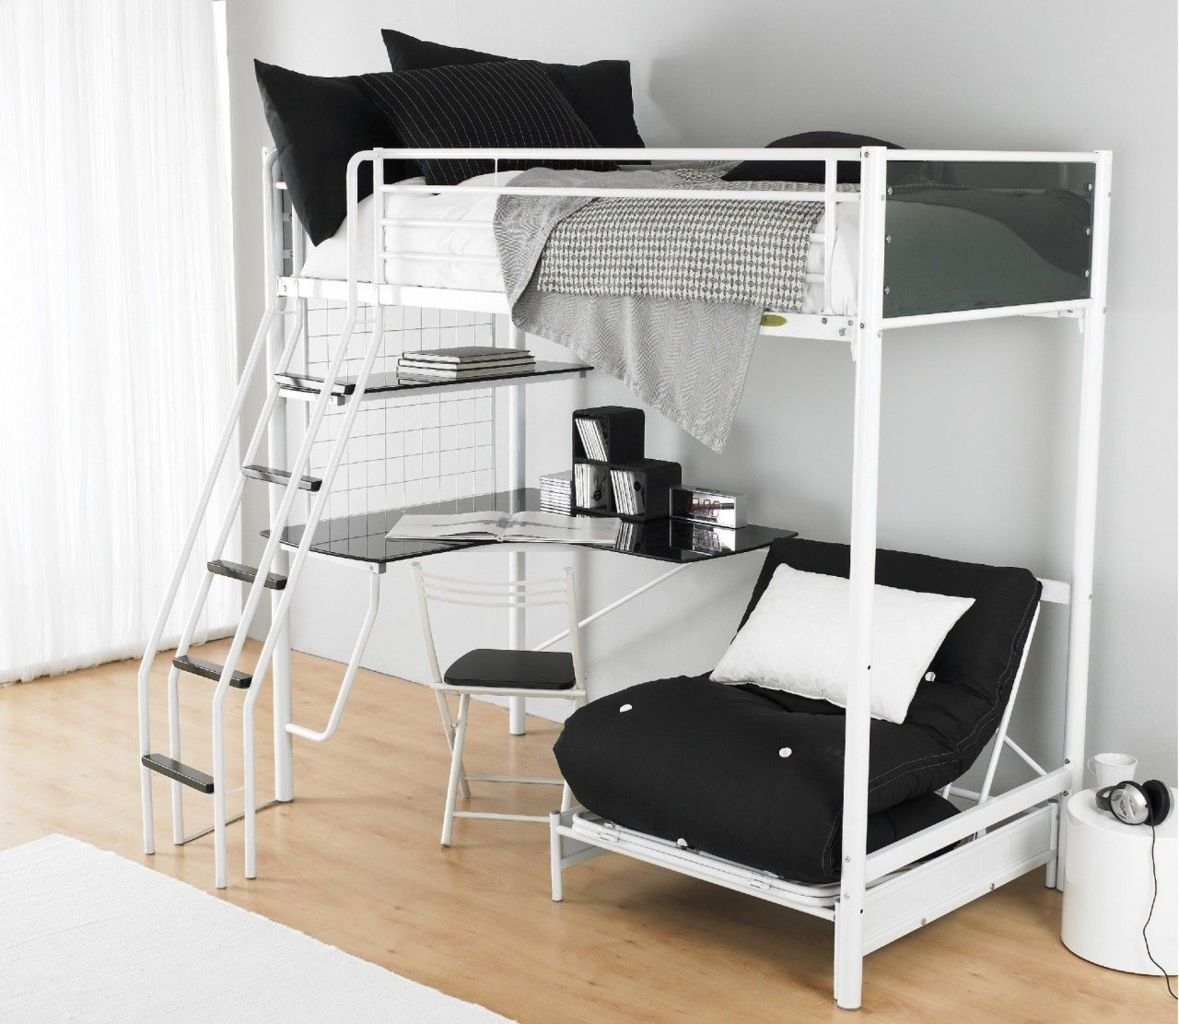 Cool bunk beds design ideas for boys that wonderful as solution for making the most out of a shared space Part 21